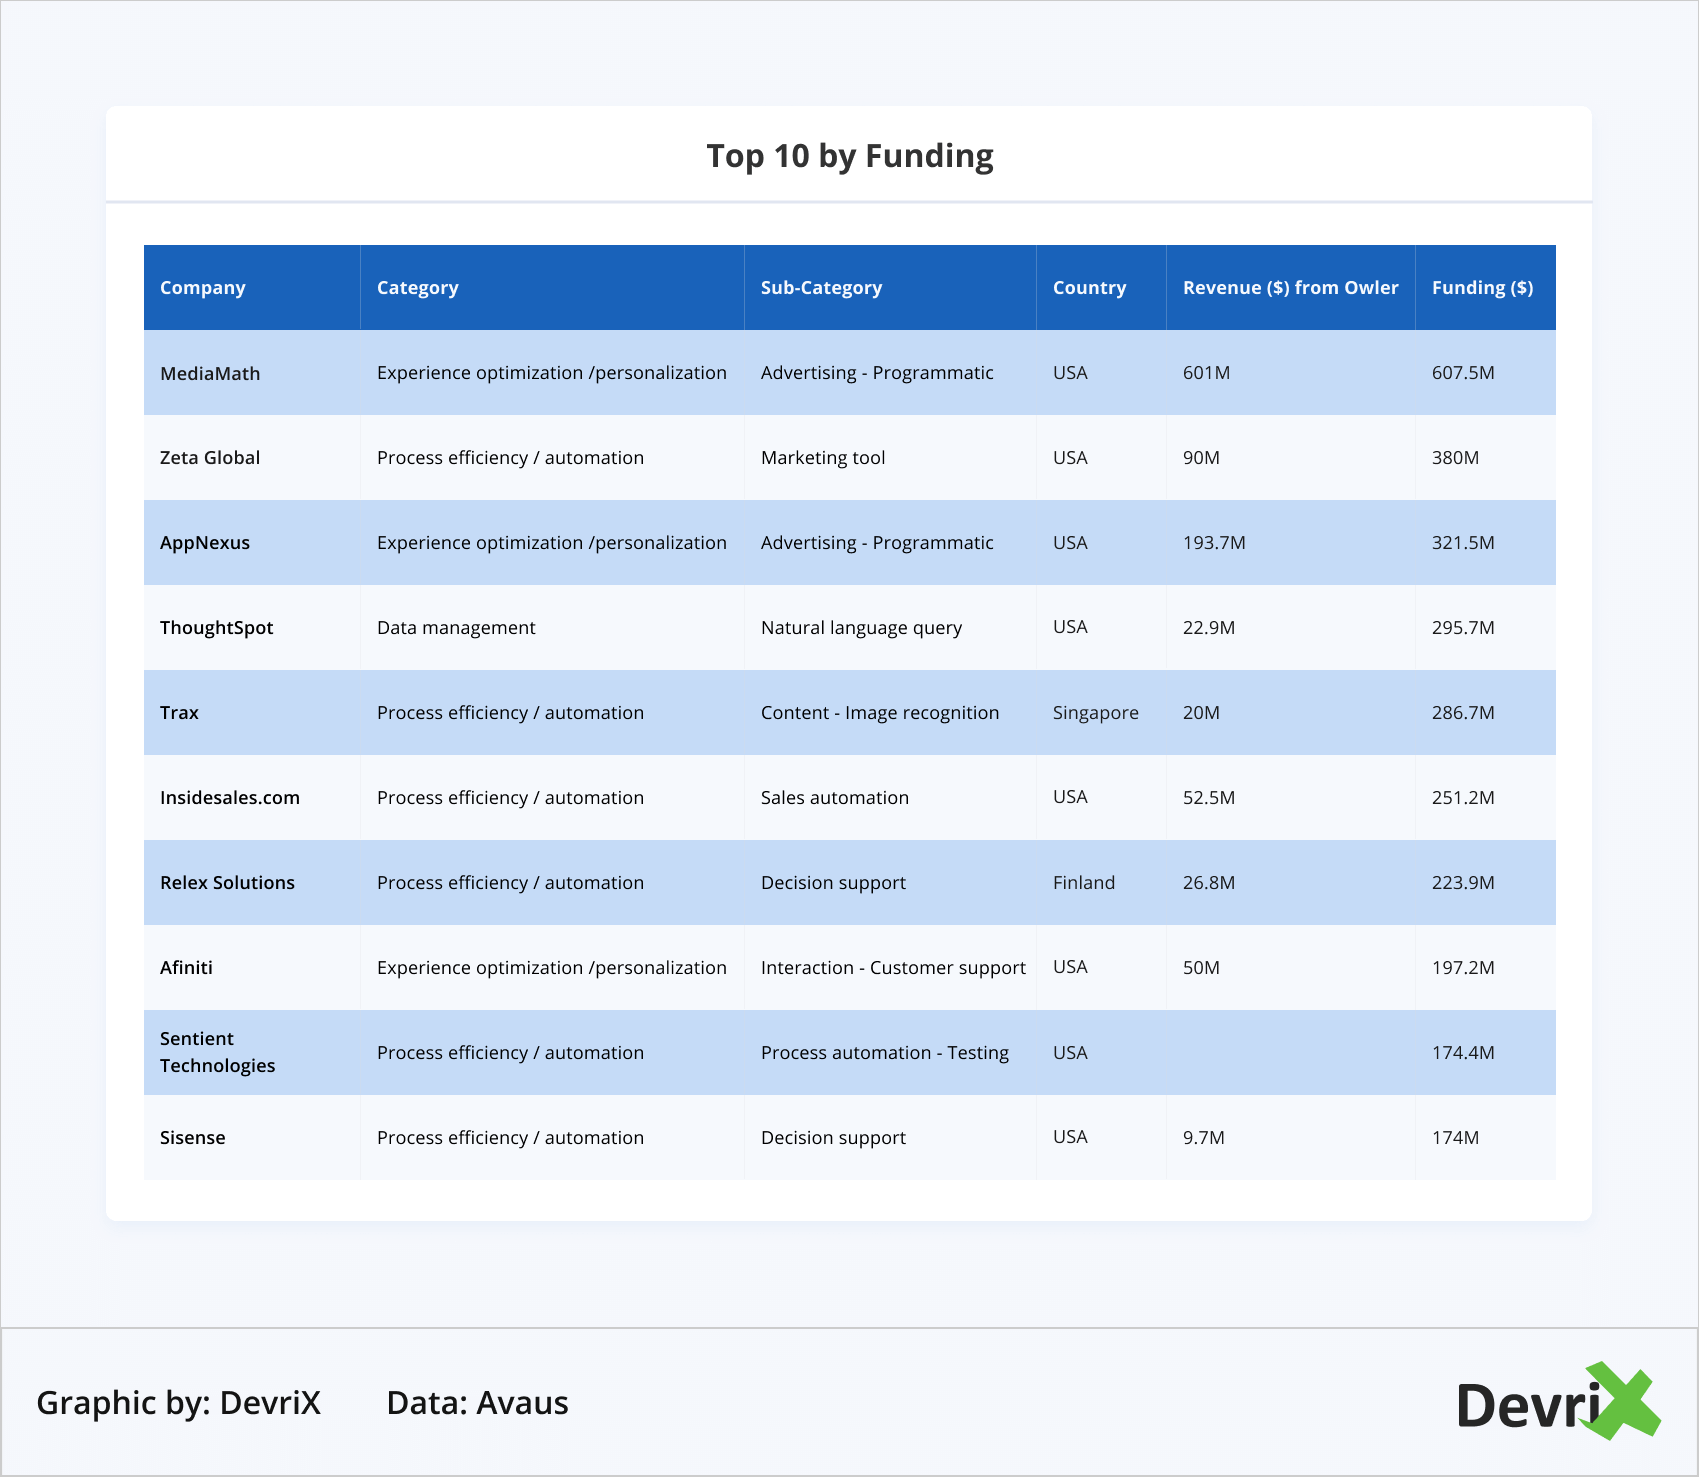 Top 10 by Funding